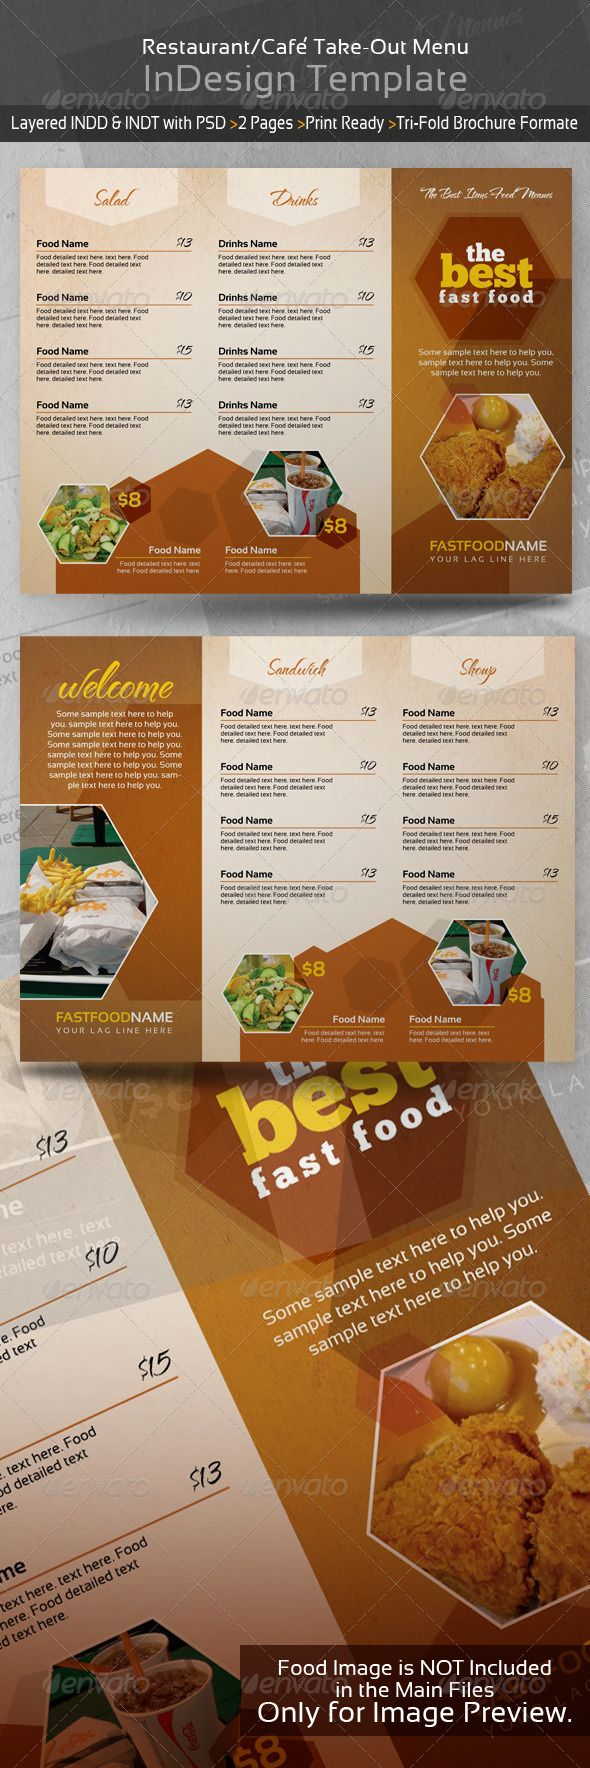 Best images about restaurant ideas on pinterest